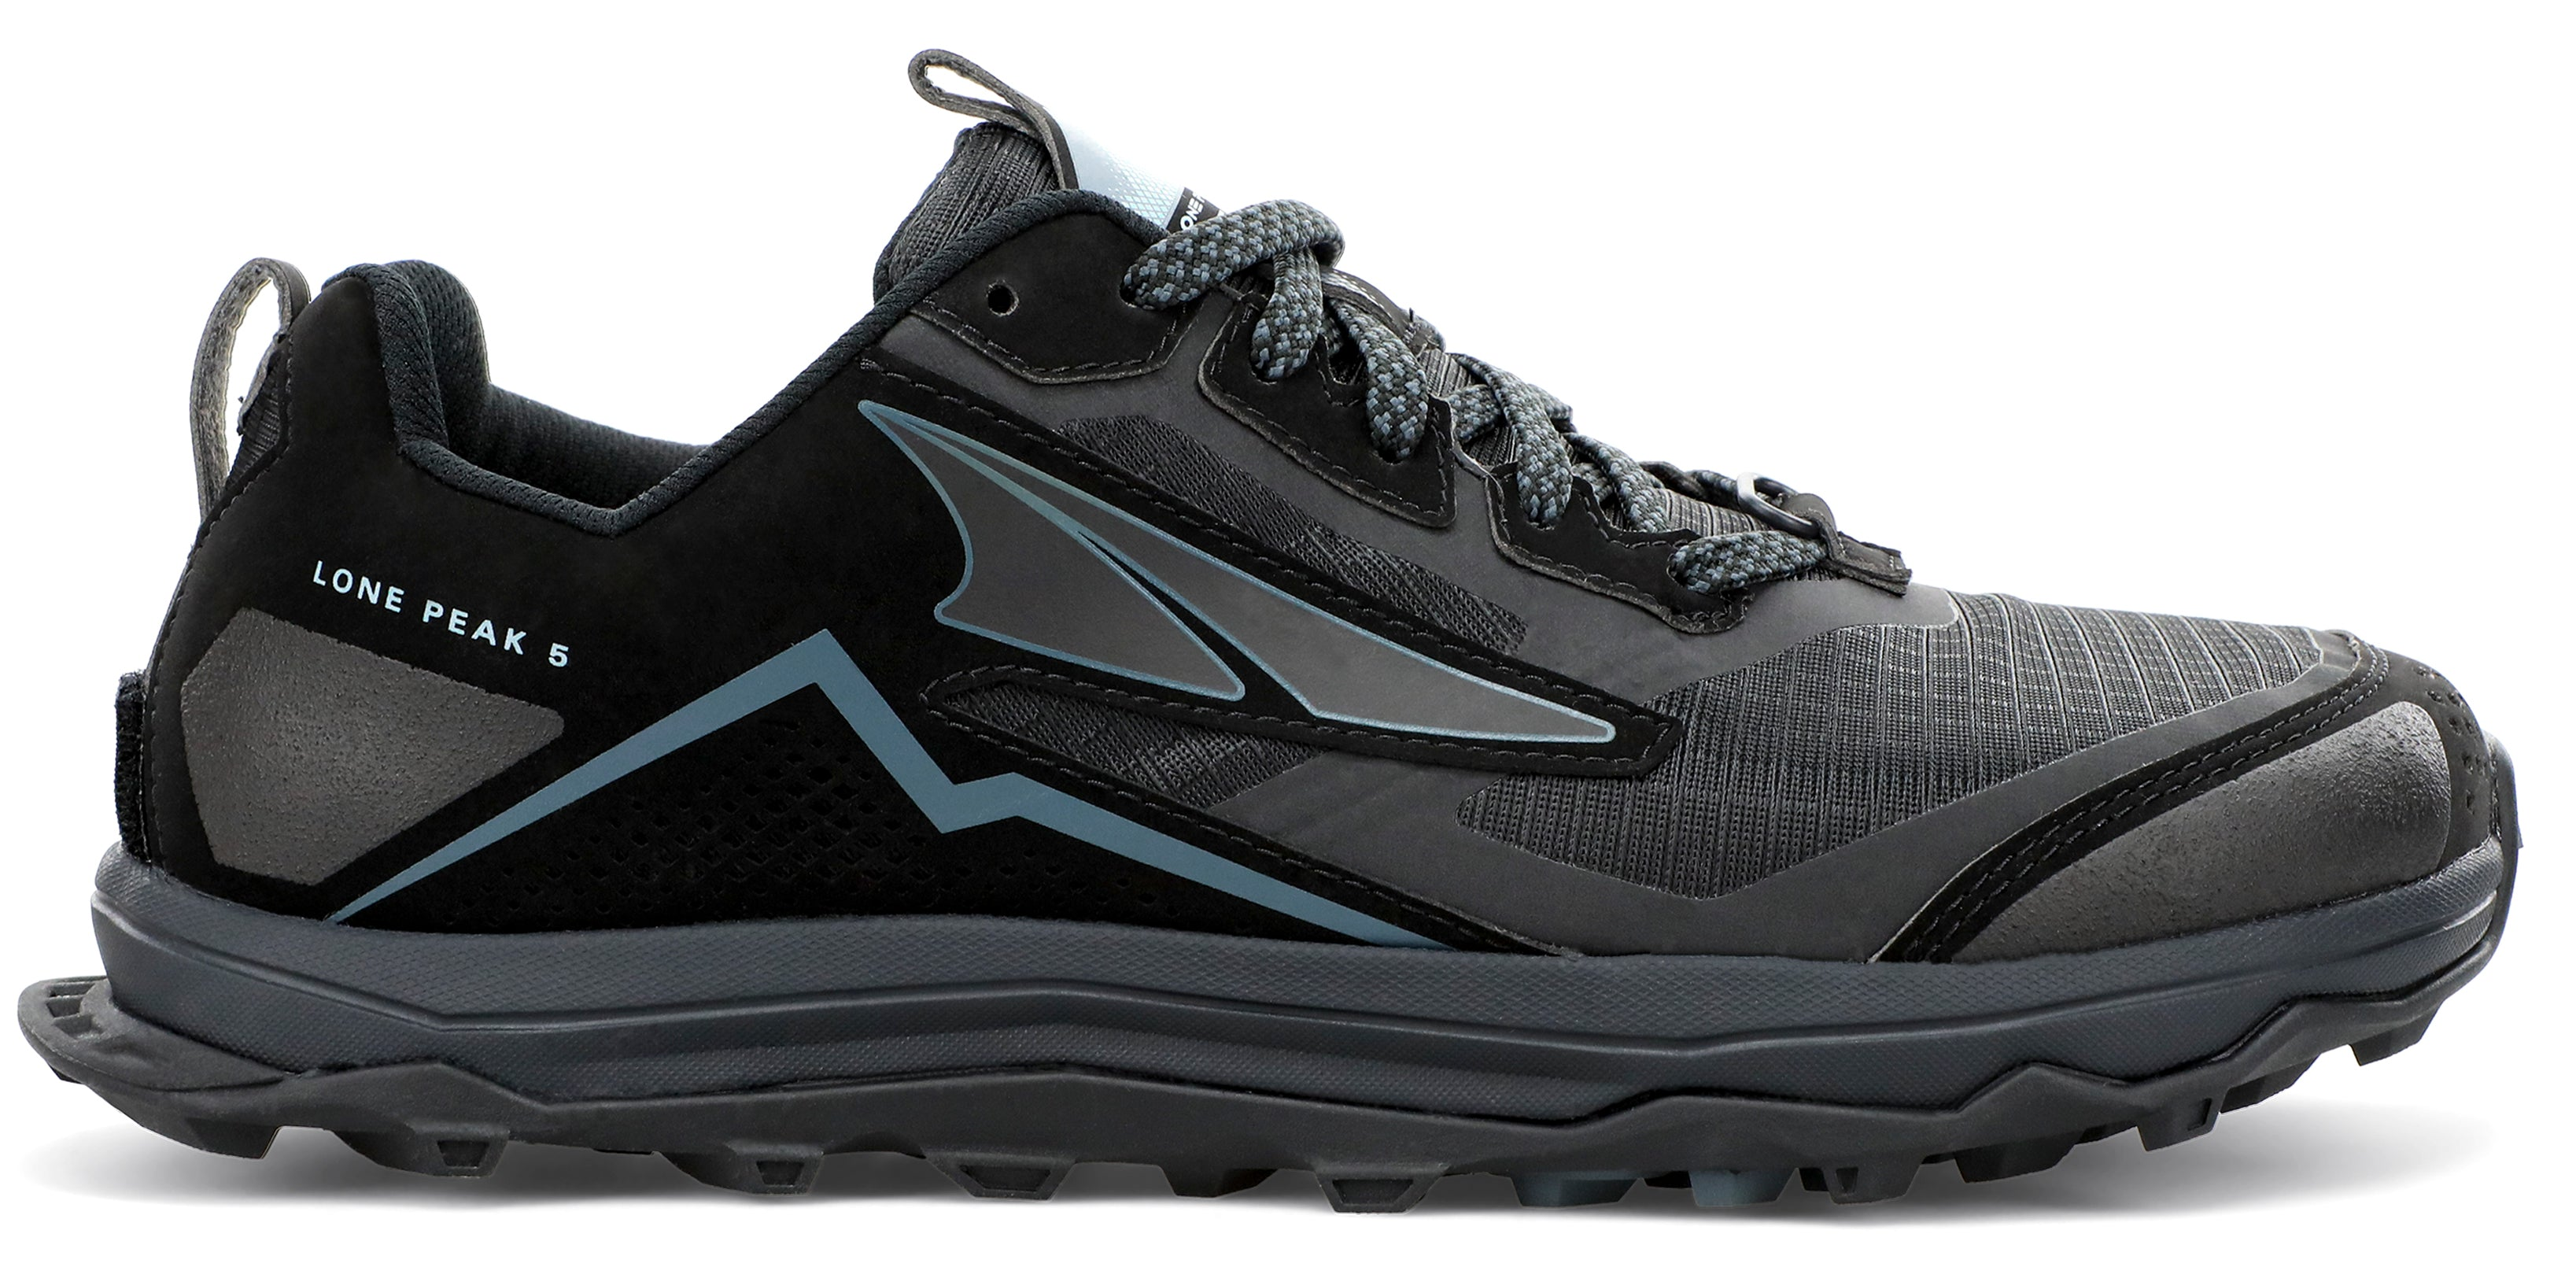 Altra Women's Lone Peak 5 Trail Running Shoe in Black from the side